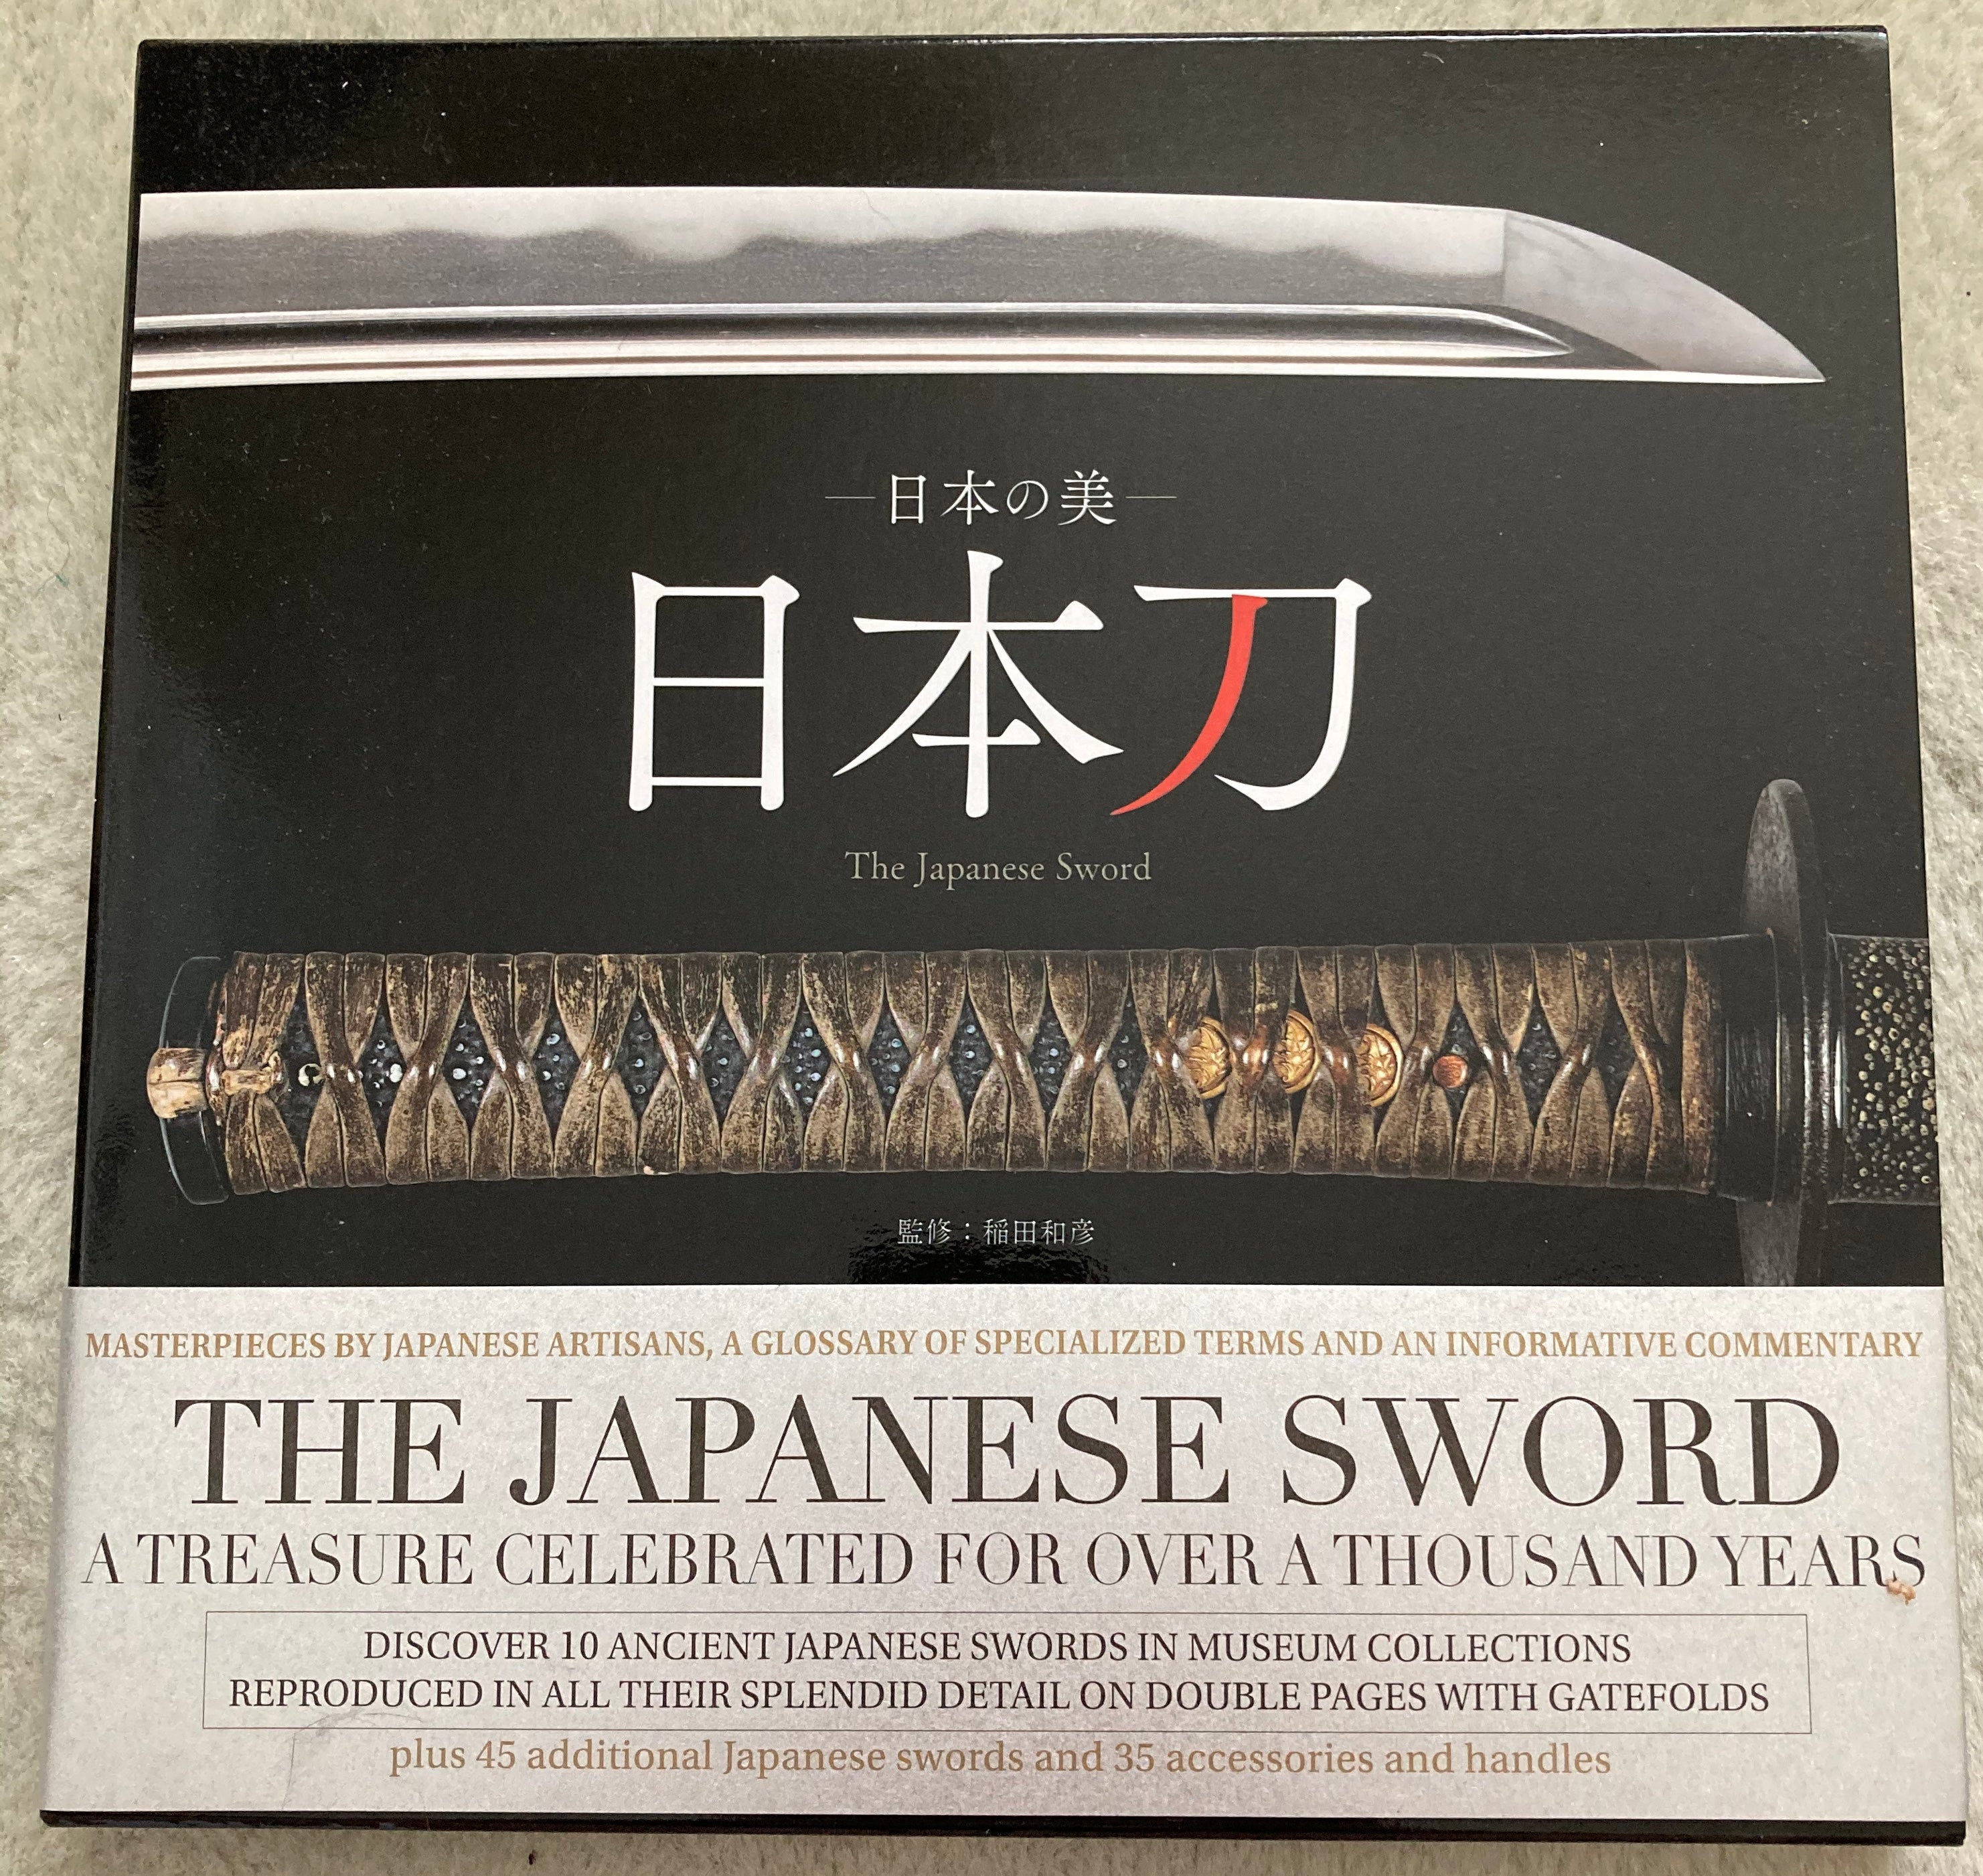 The Japanese Sword , a treasure celebrated for a thousand years - Yamazakura